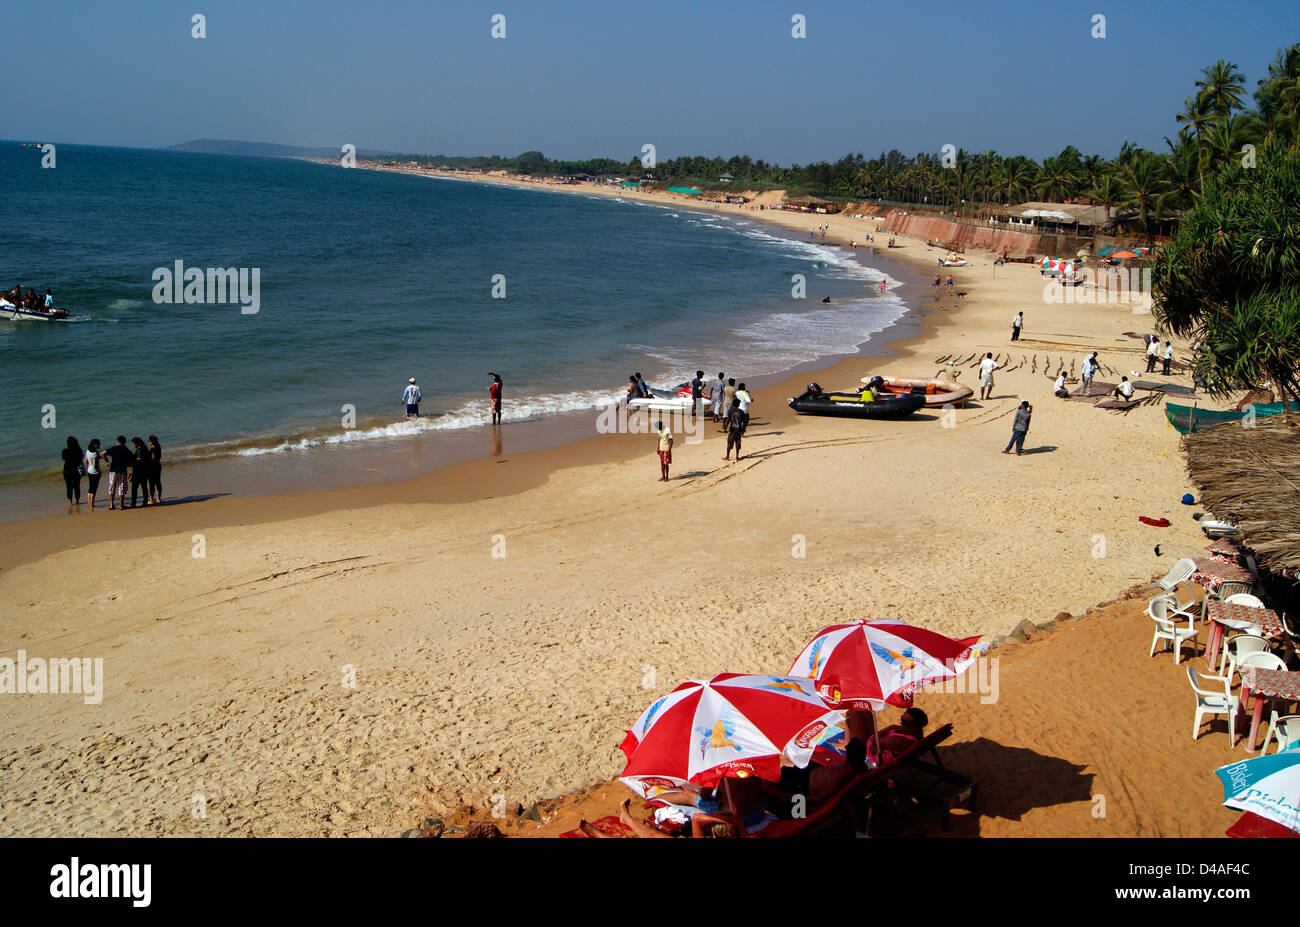 Goa Beaches India Wide Angle View High Resolution Stock Photography And Images Alamy